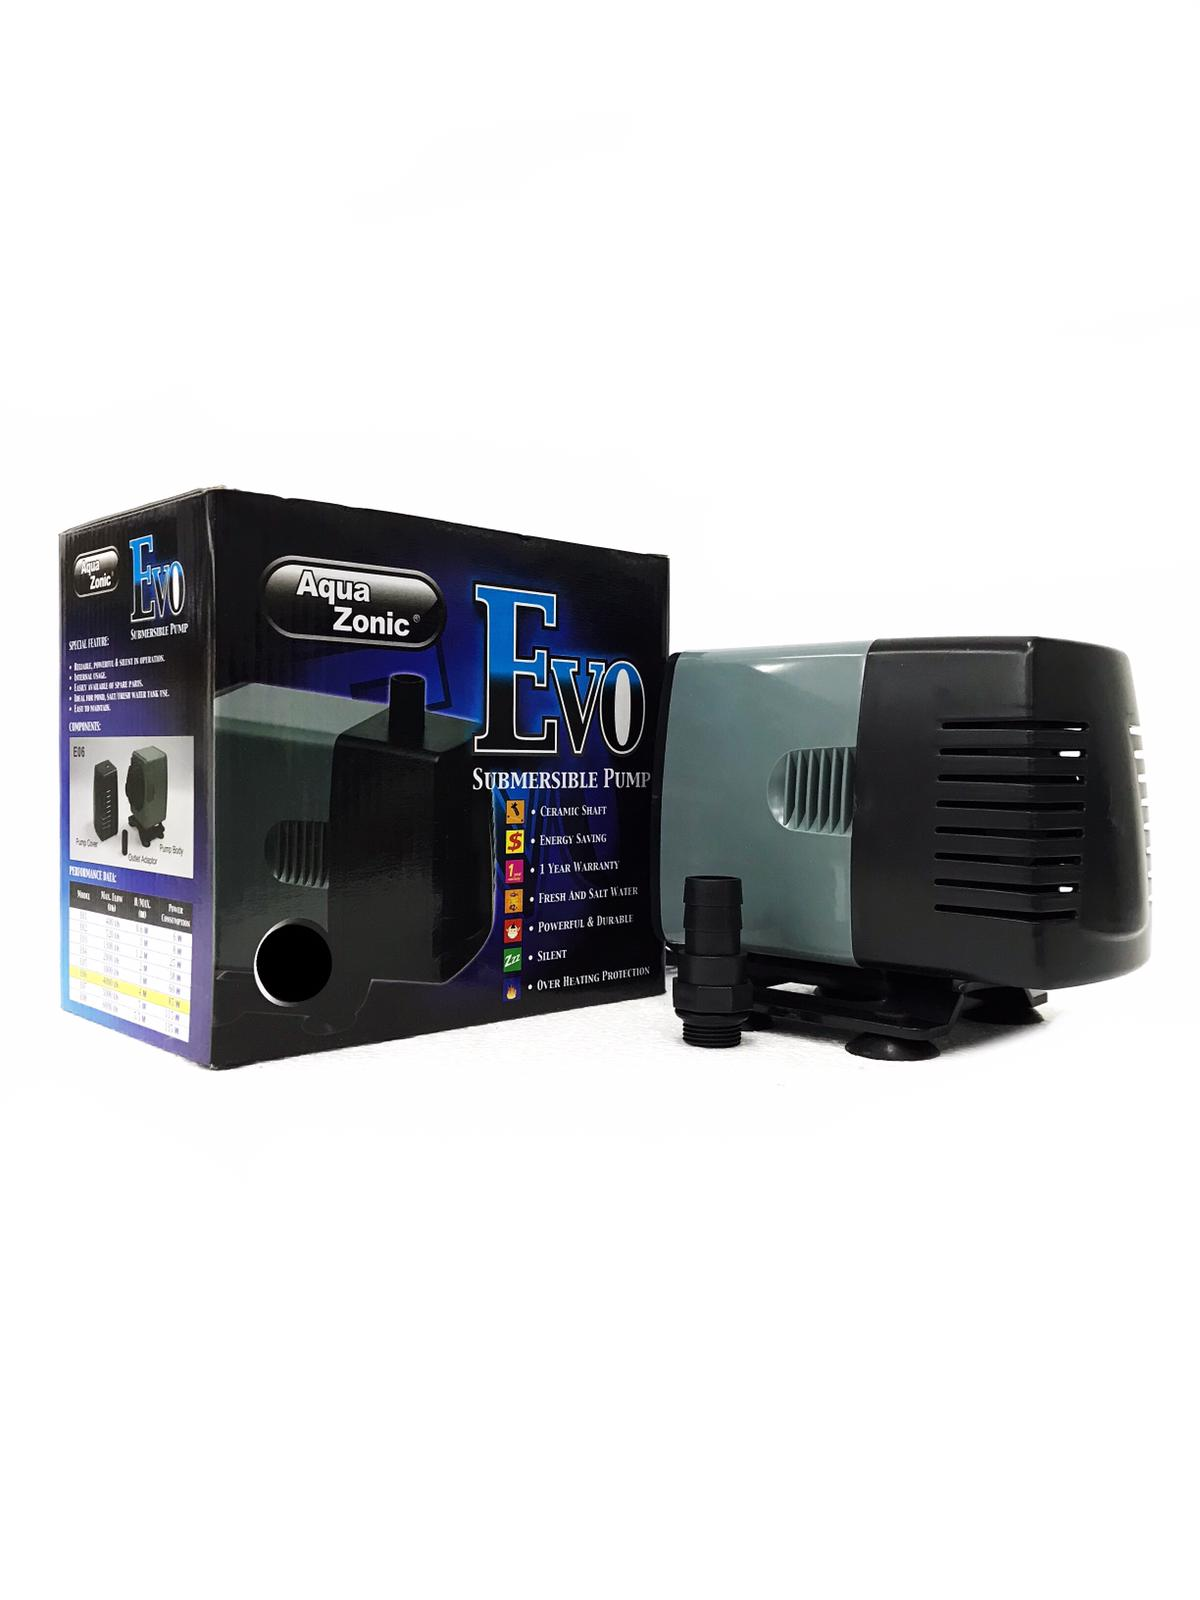 Aqua Zonic Evo Submersible Pump